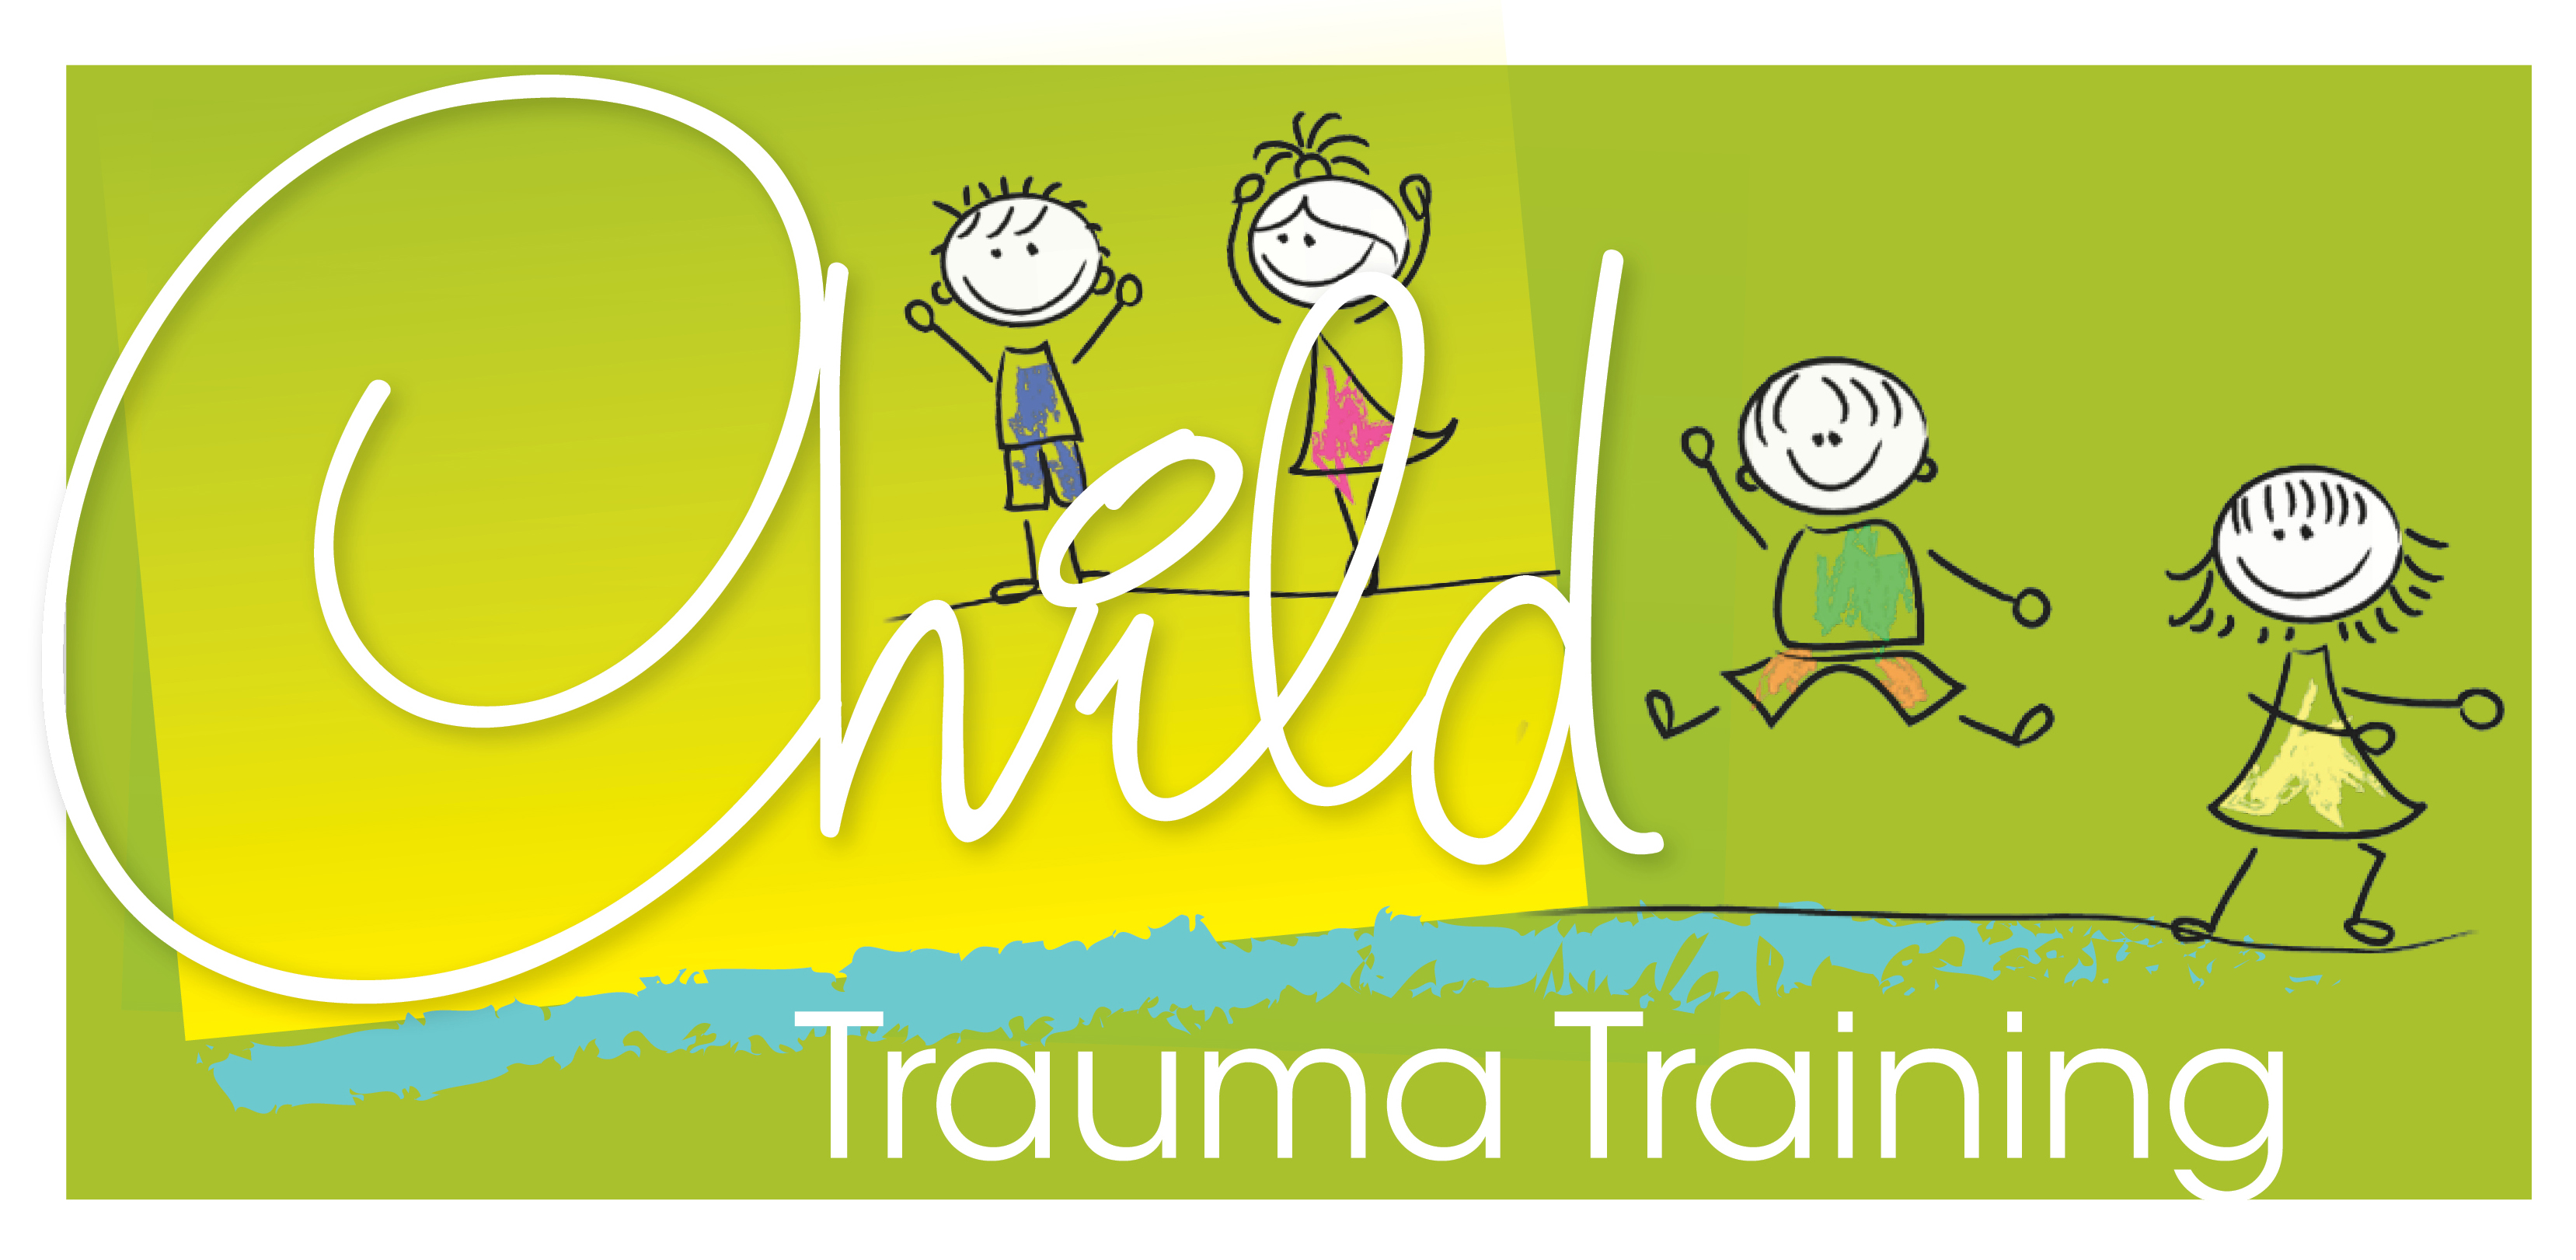 Child Trauma Training Logo